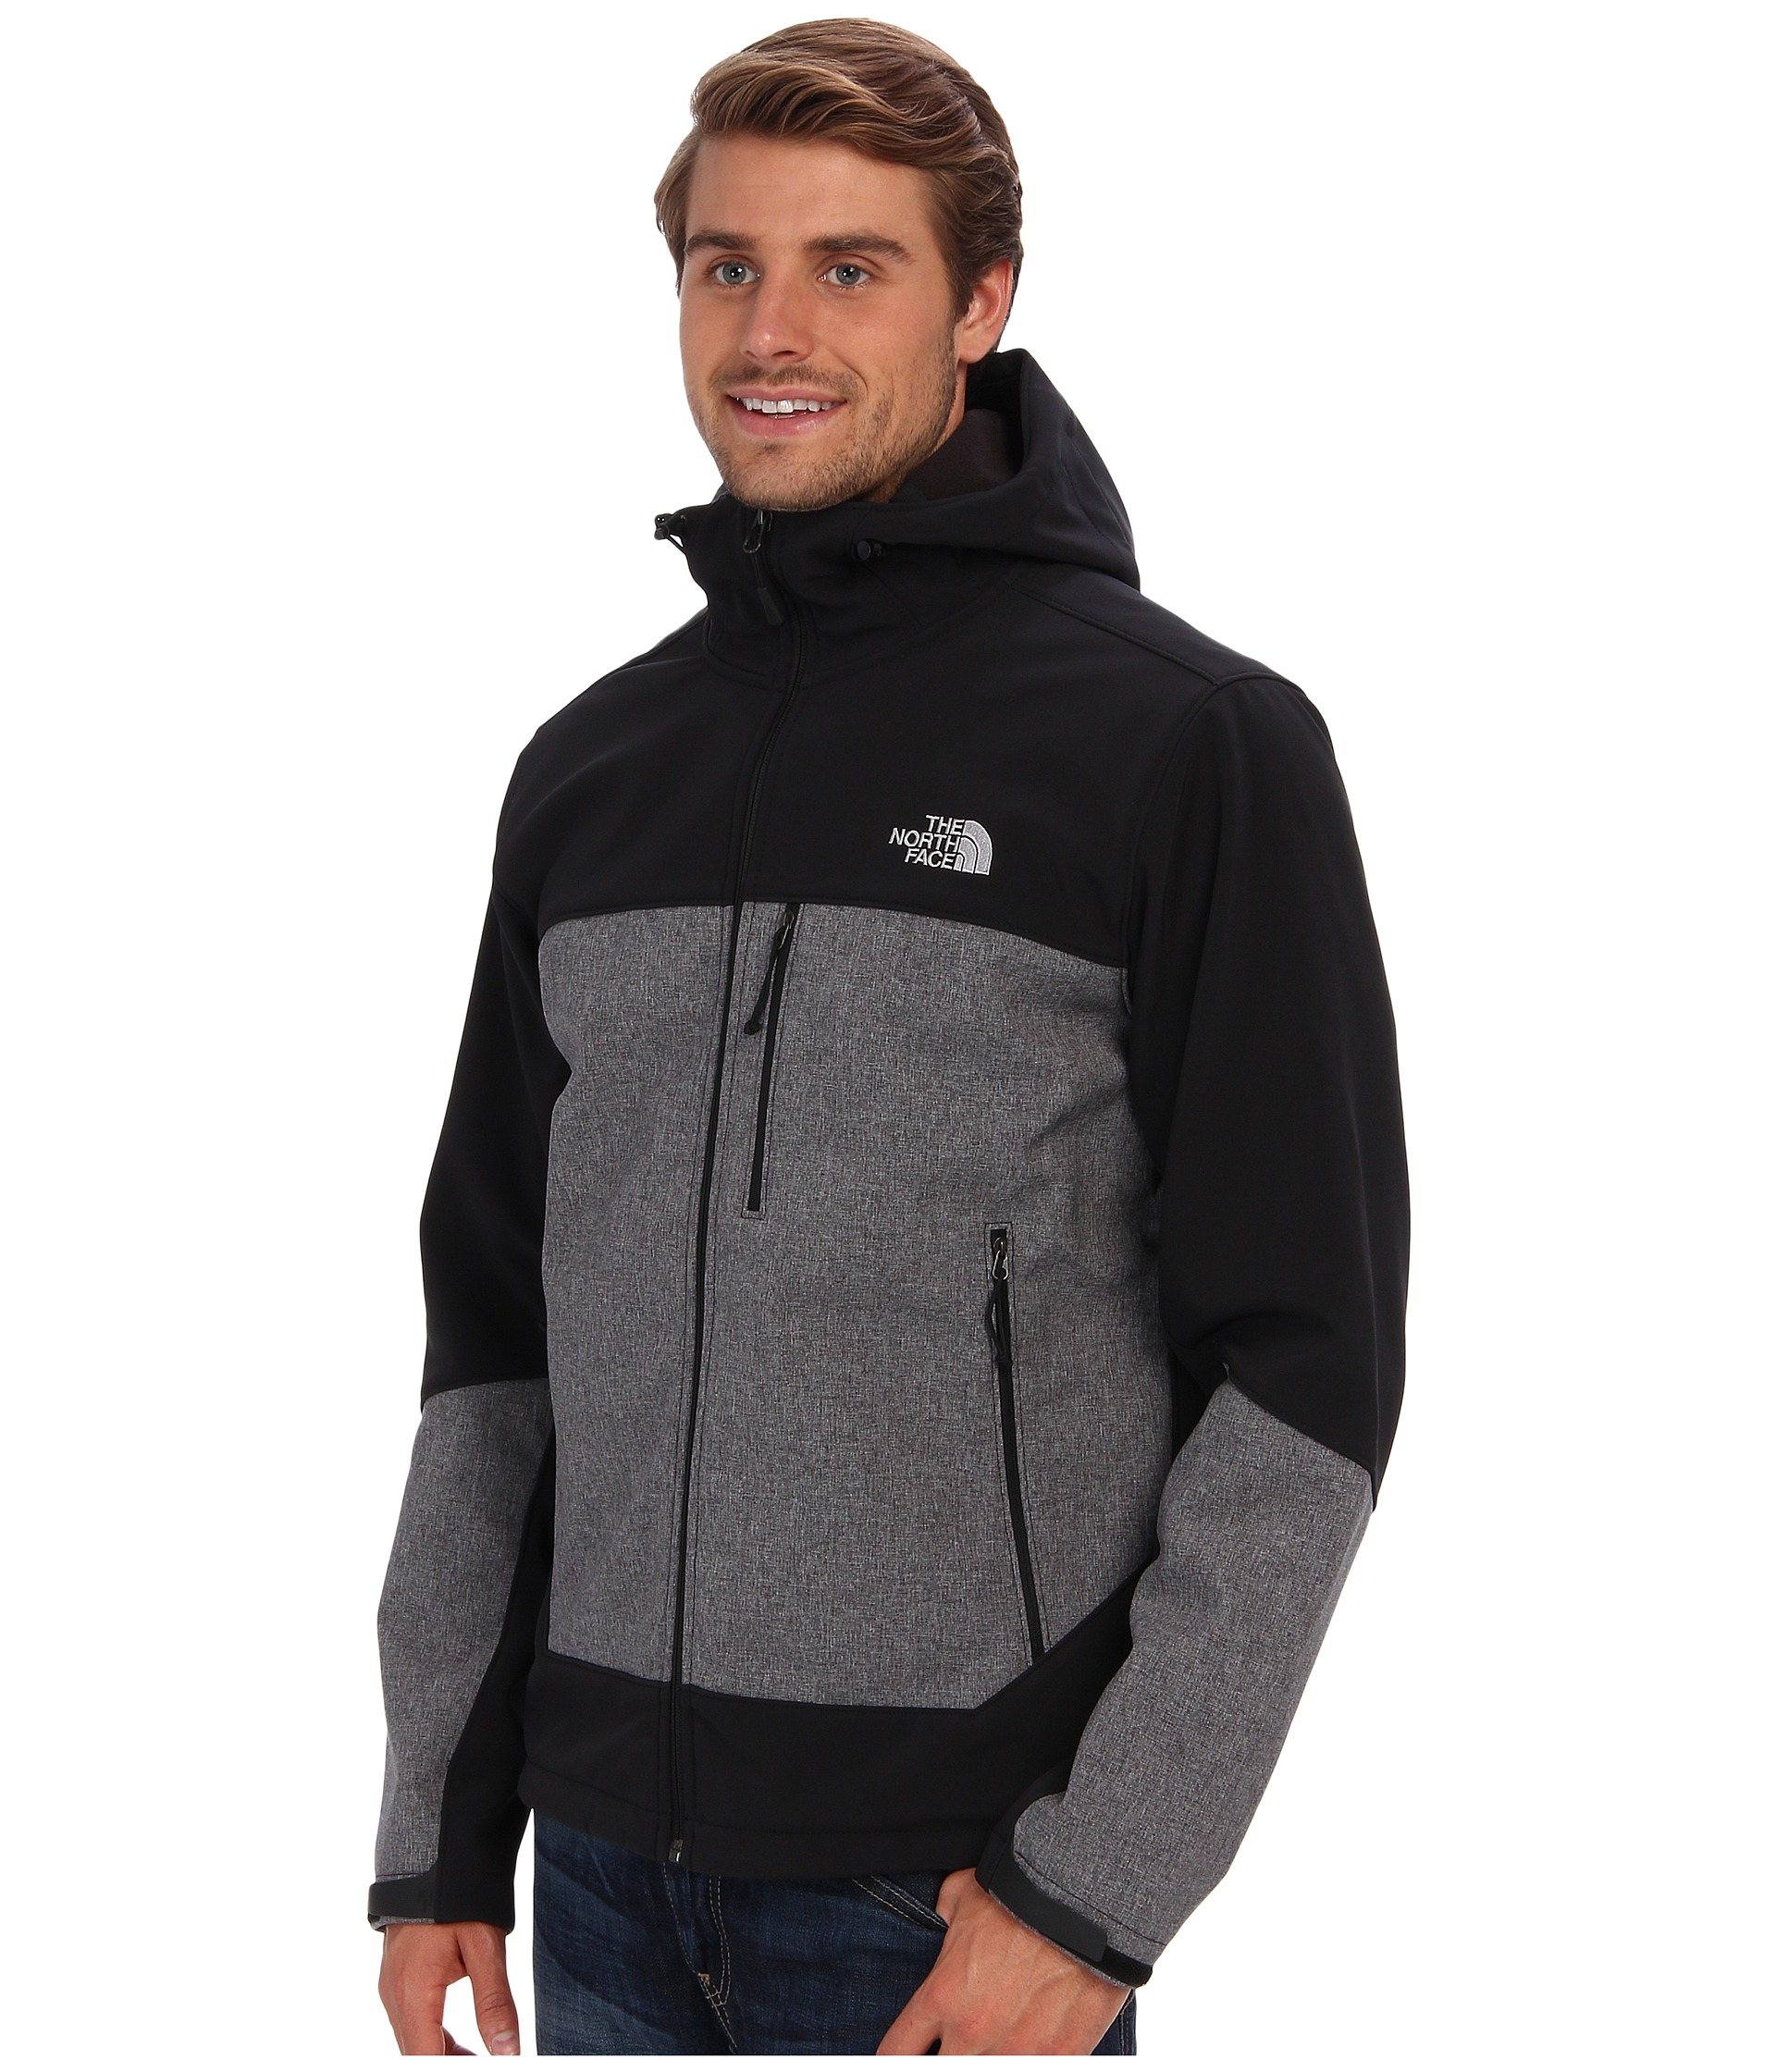 4f2870efe The North Face Black Apex Bionic Hoodie for men